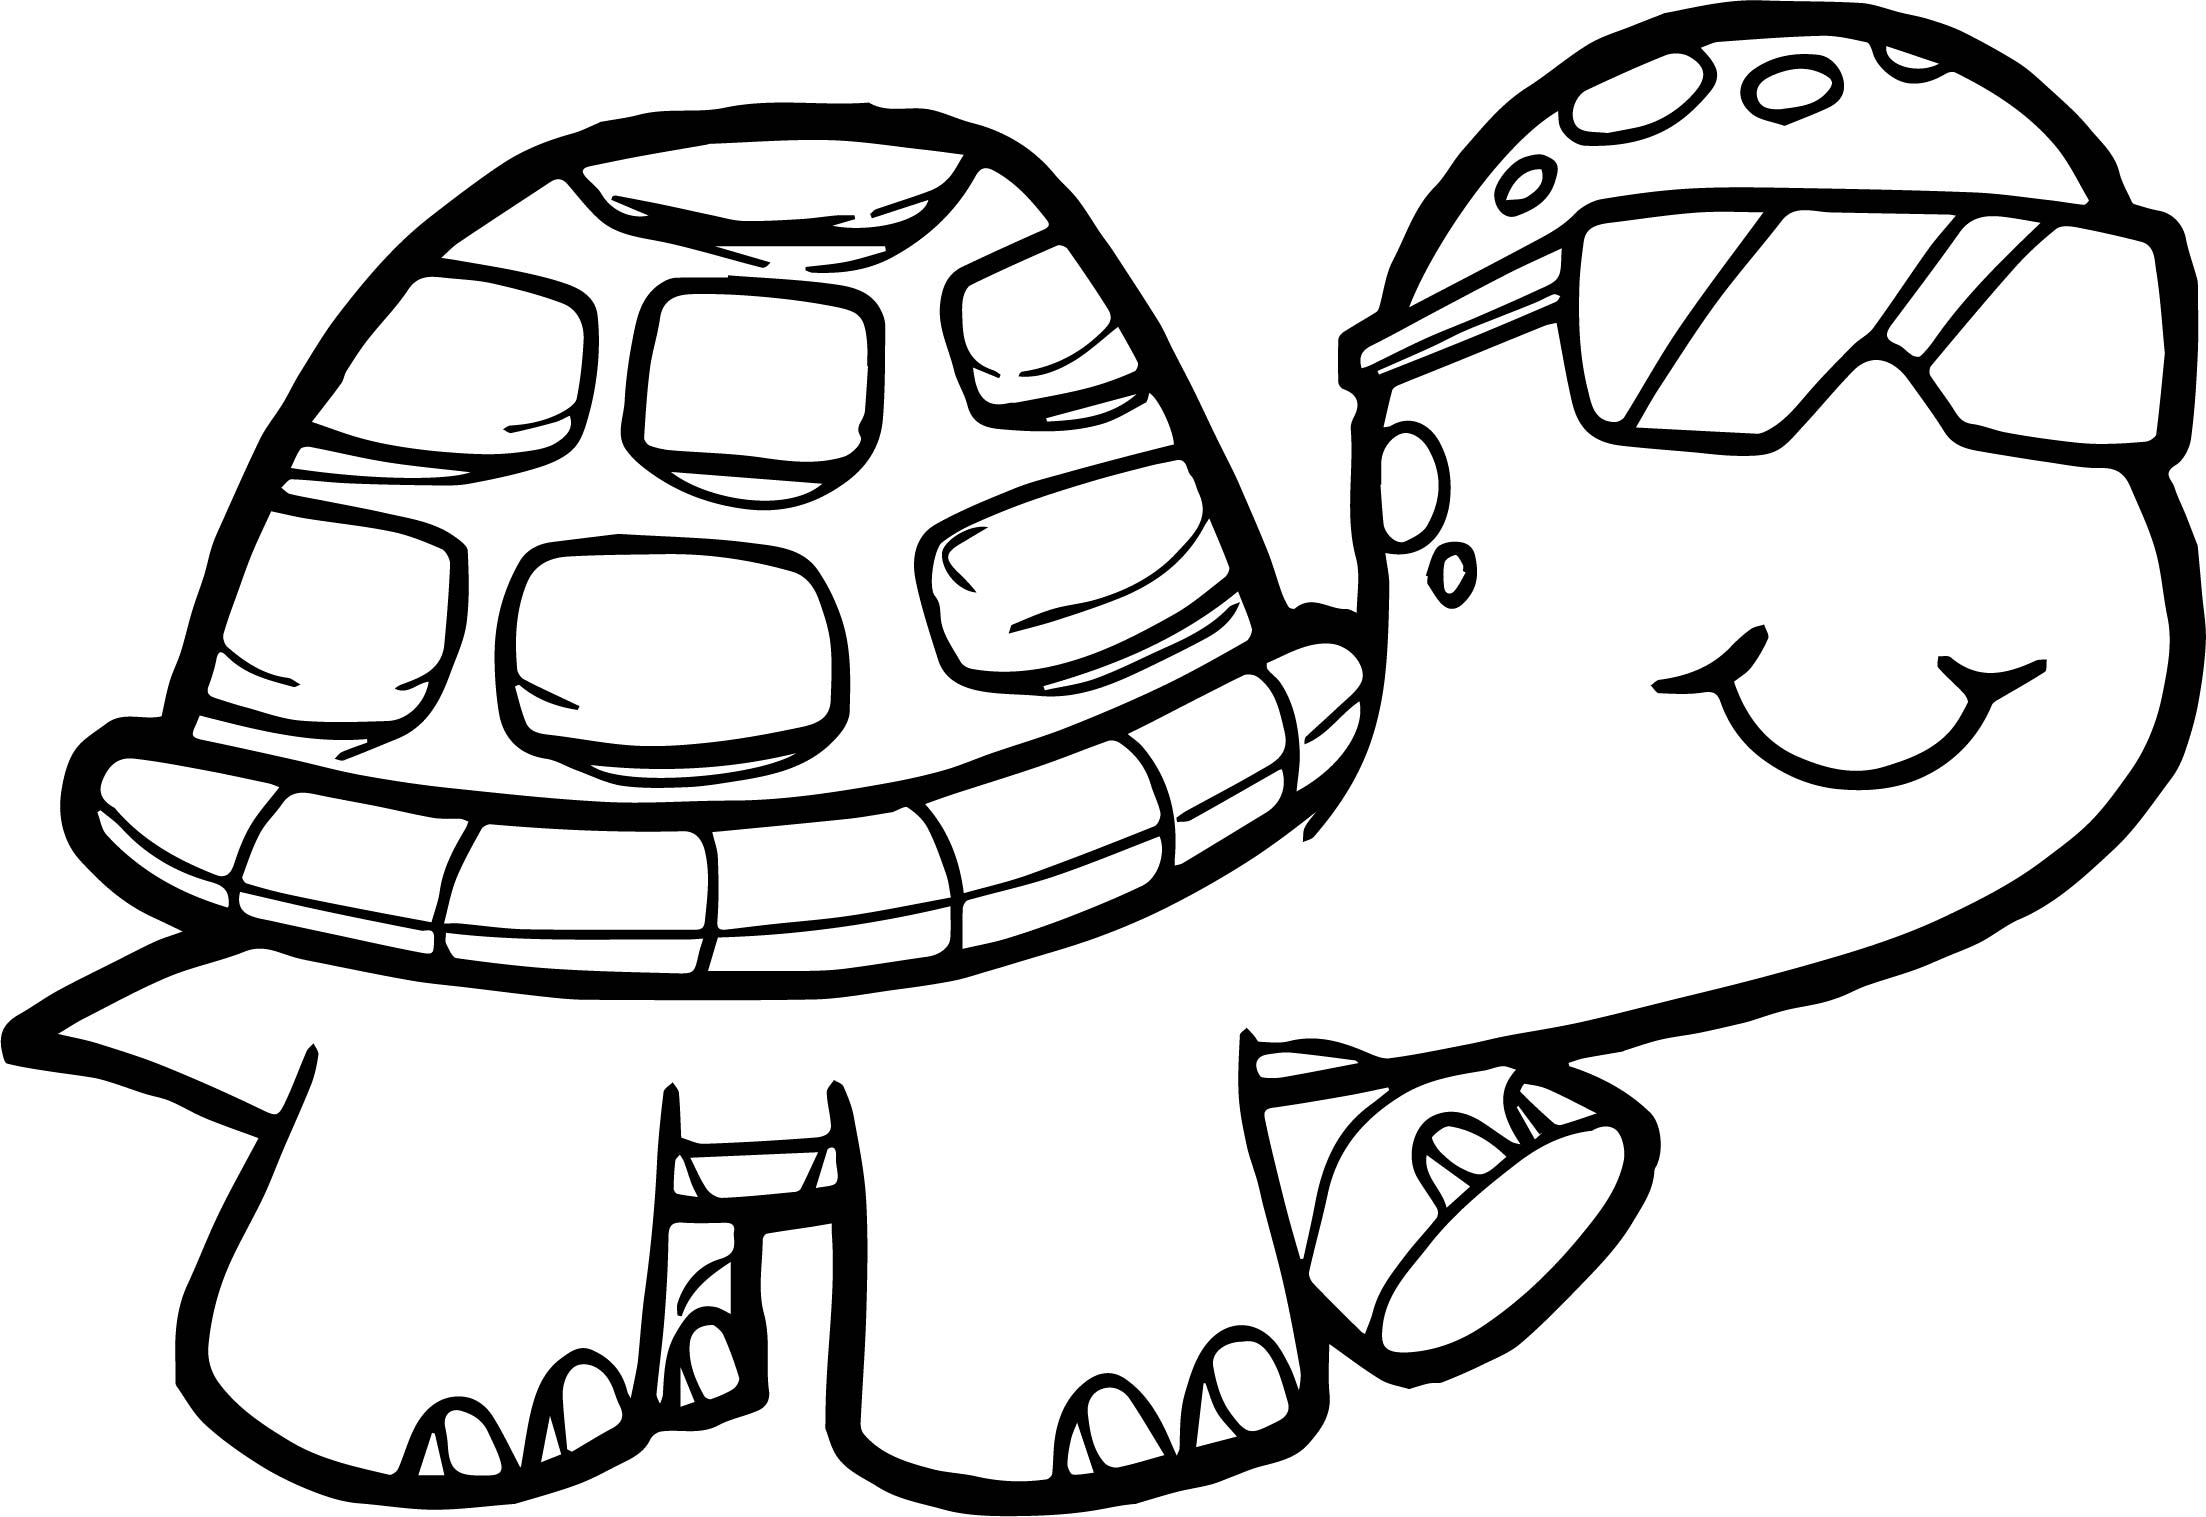 tortoise pictures to colour glasses tortoise turtle coloring page wecoloringpagecom to colour pictures tortoise